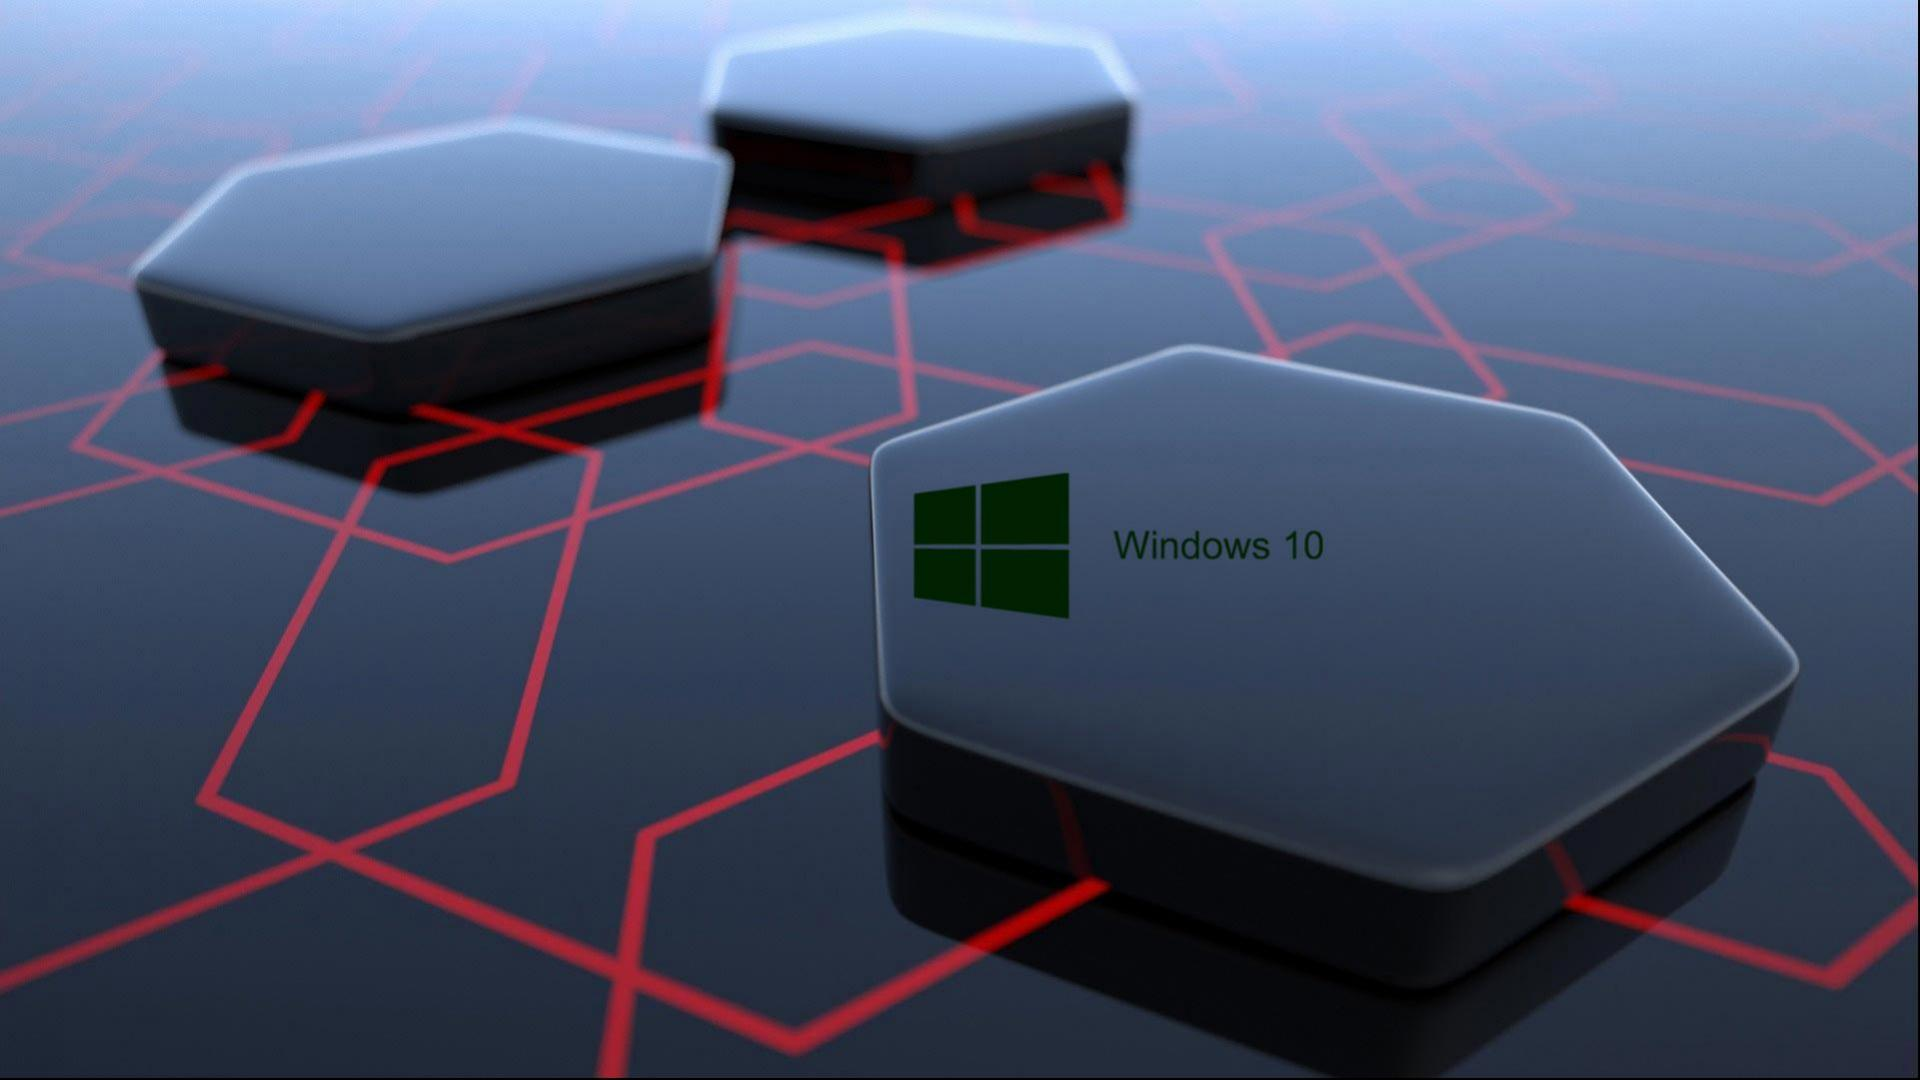 Windows 10 Desktop Image with 3d Art Black Hexagonal Wallpapers HD 1920x1080